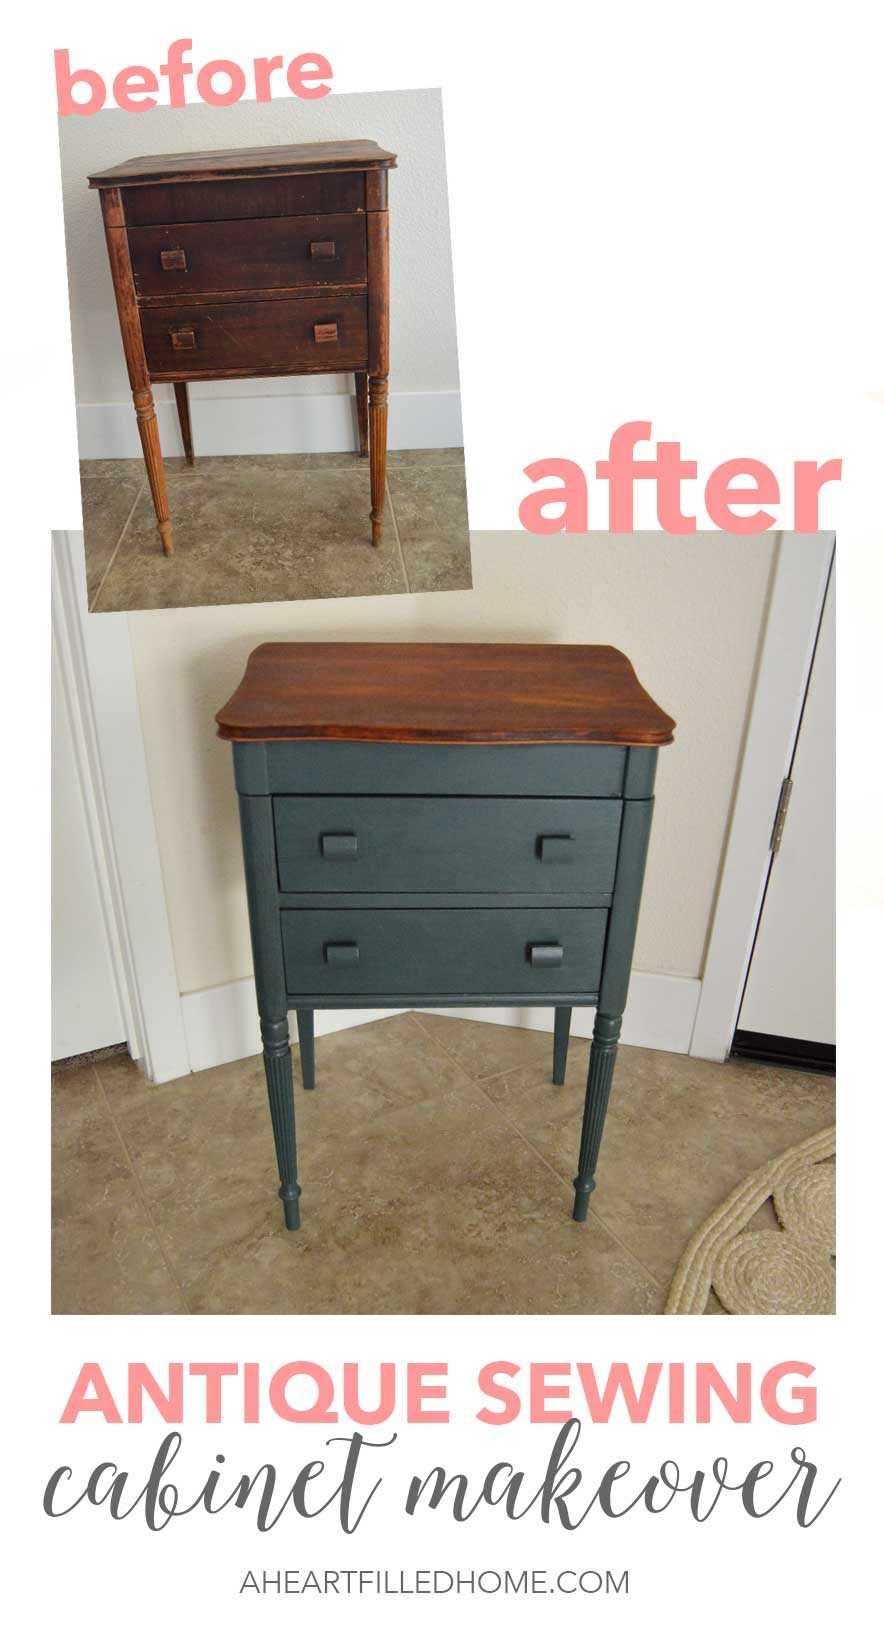 This antique sewing cabinet got a beautiful makeover! Using paint, clear coat and hemp oil gave it a whole new look!